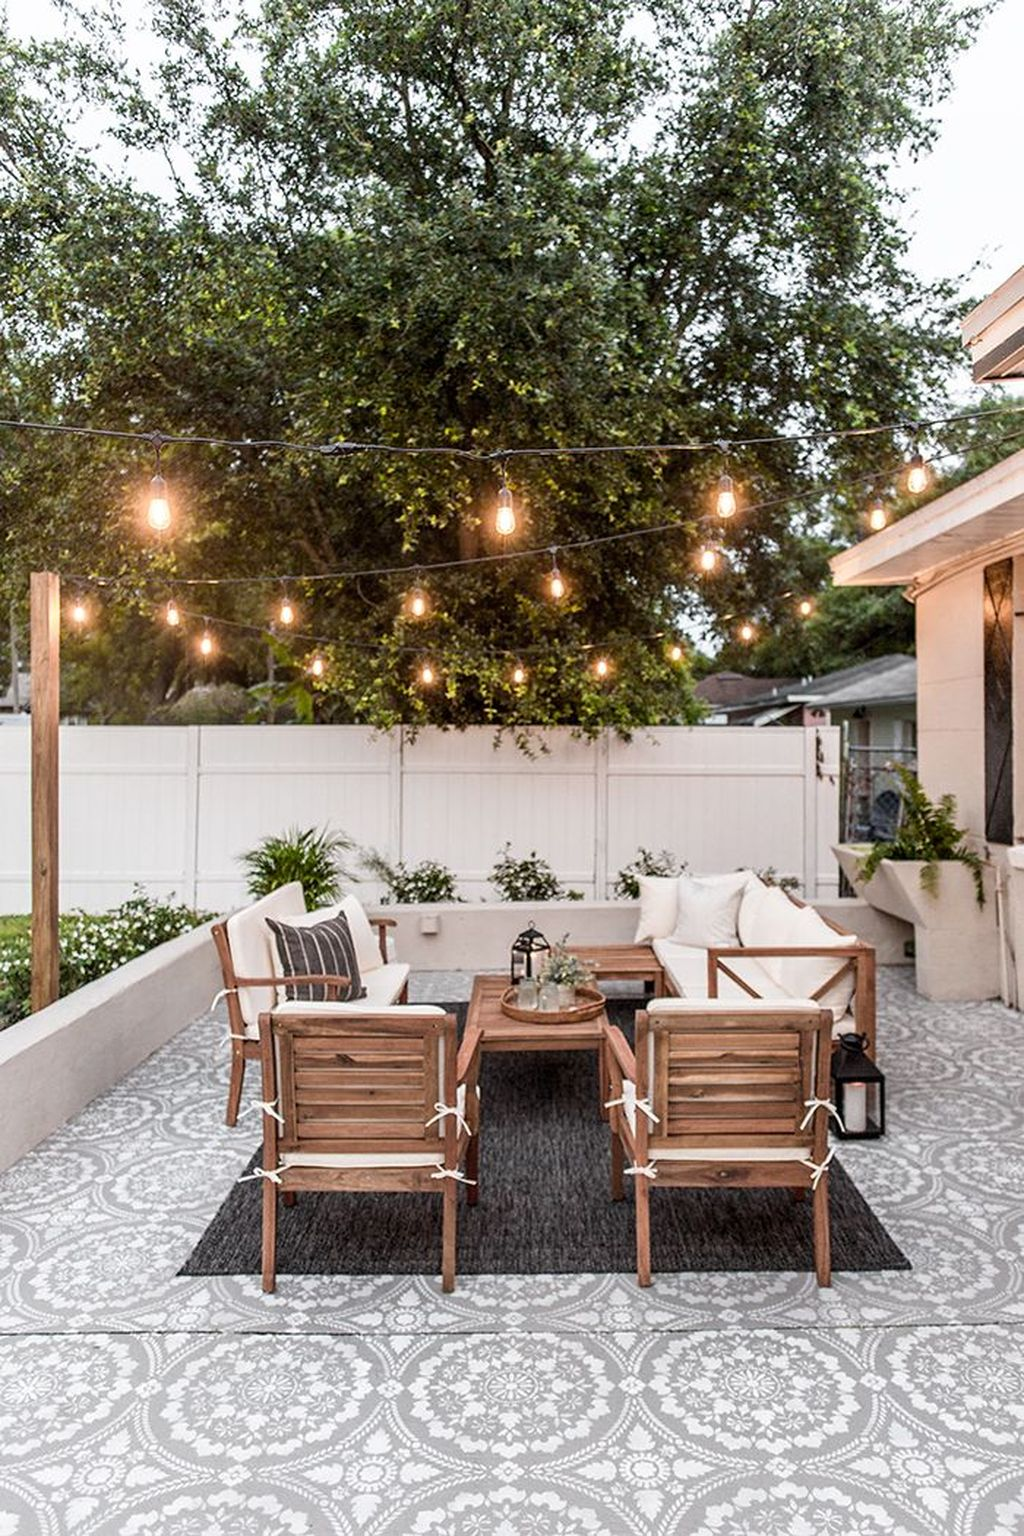 Wonderful Backyard Patio Designs Ideas Perfect For Summertime 01